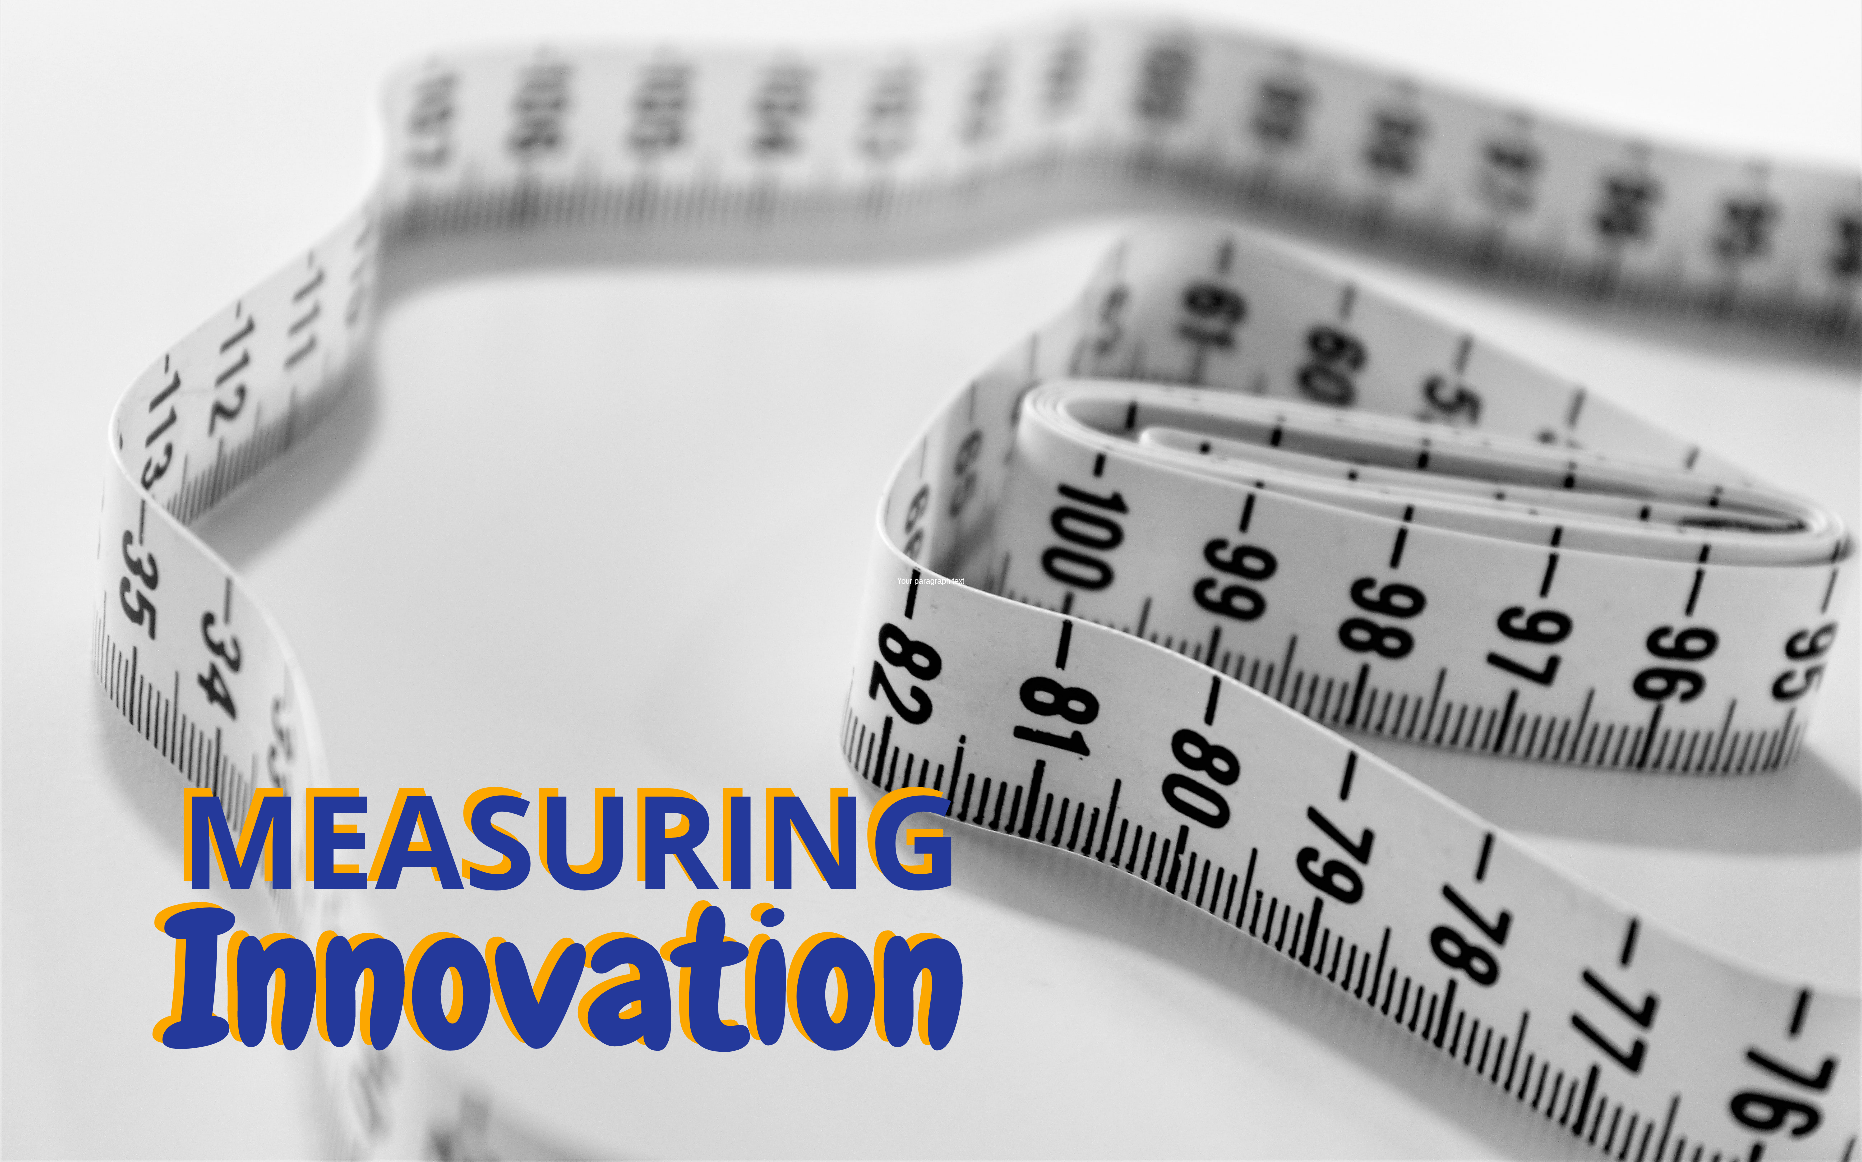 Measuring eco-innovation, Measuring social innovation, Measuring open innovation, Measuring innovation, Measuring innovation success